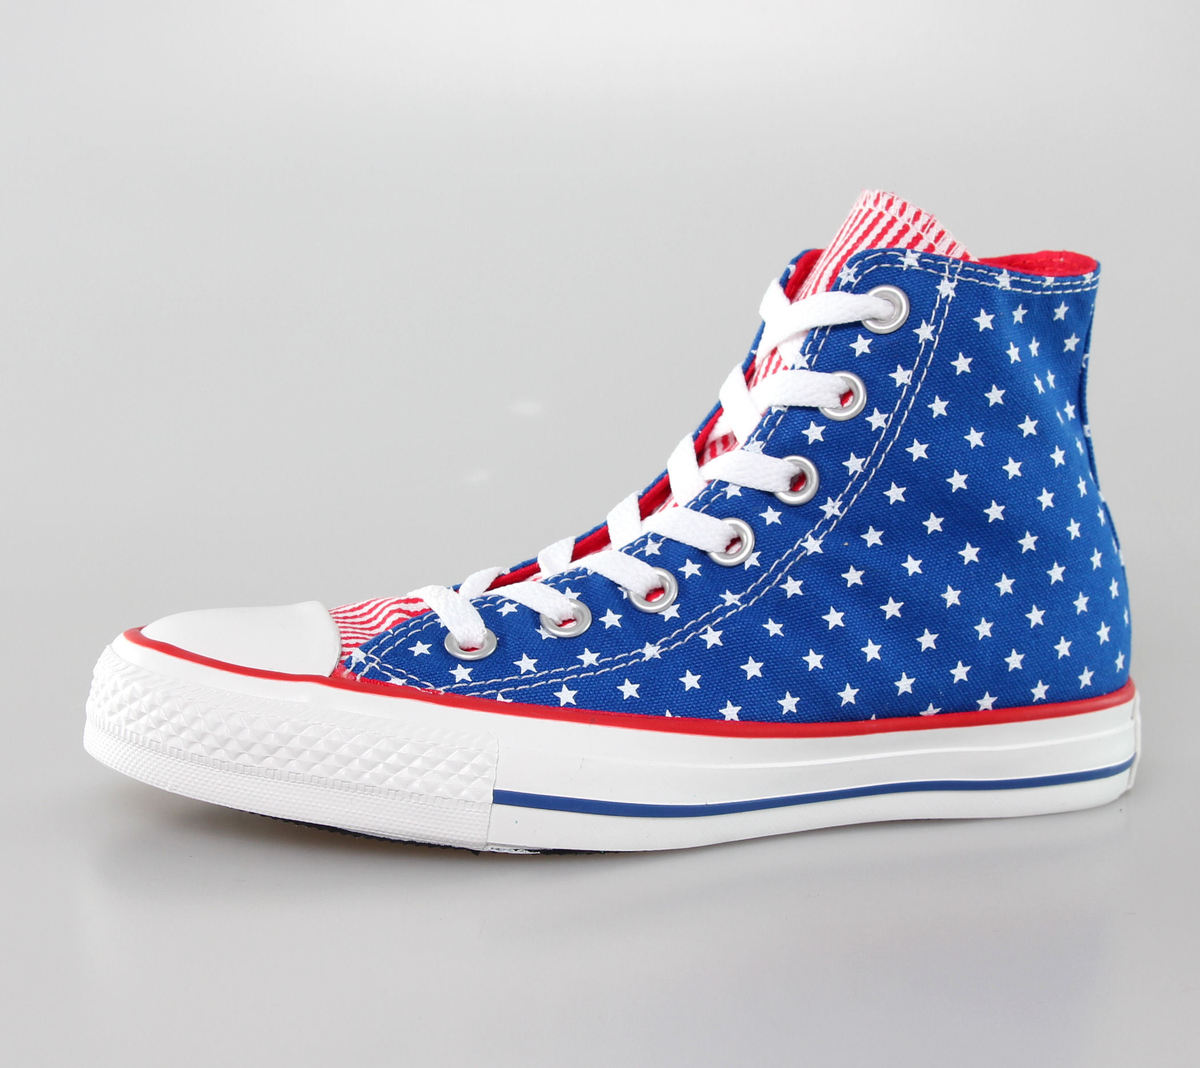 boty CONVERSE - Chuck Taylor All Star - Blue/White/Red - C144826F